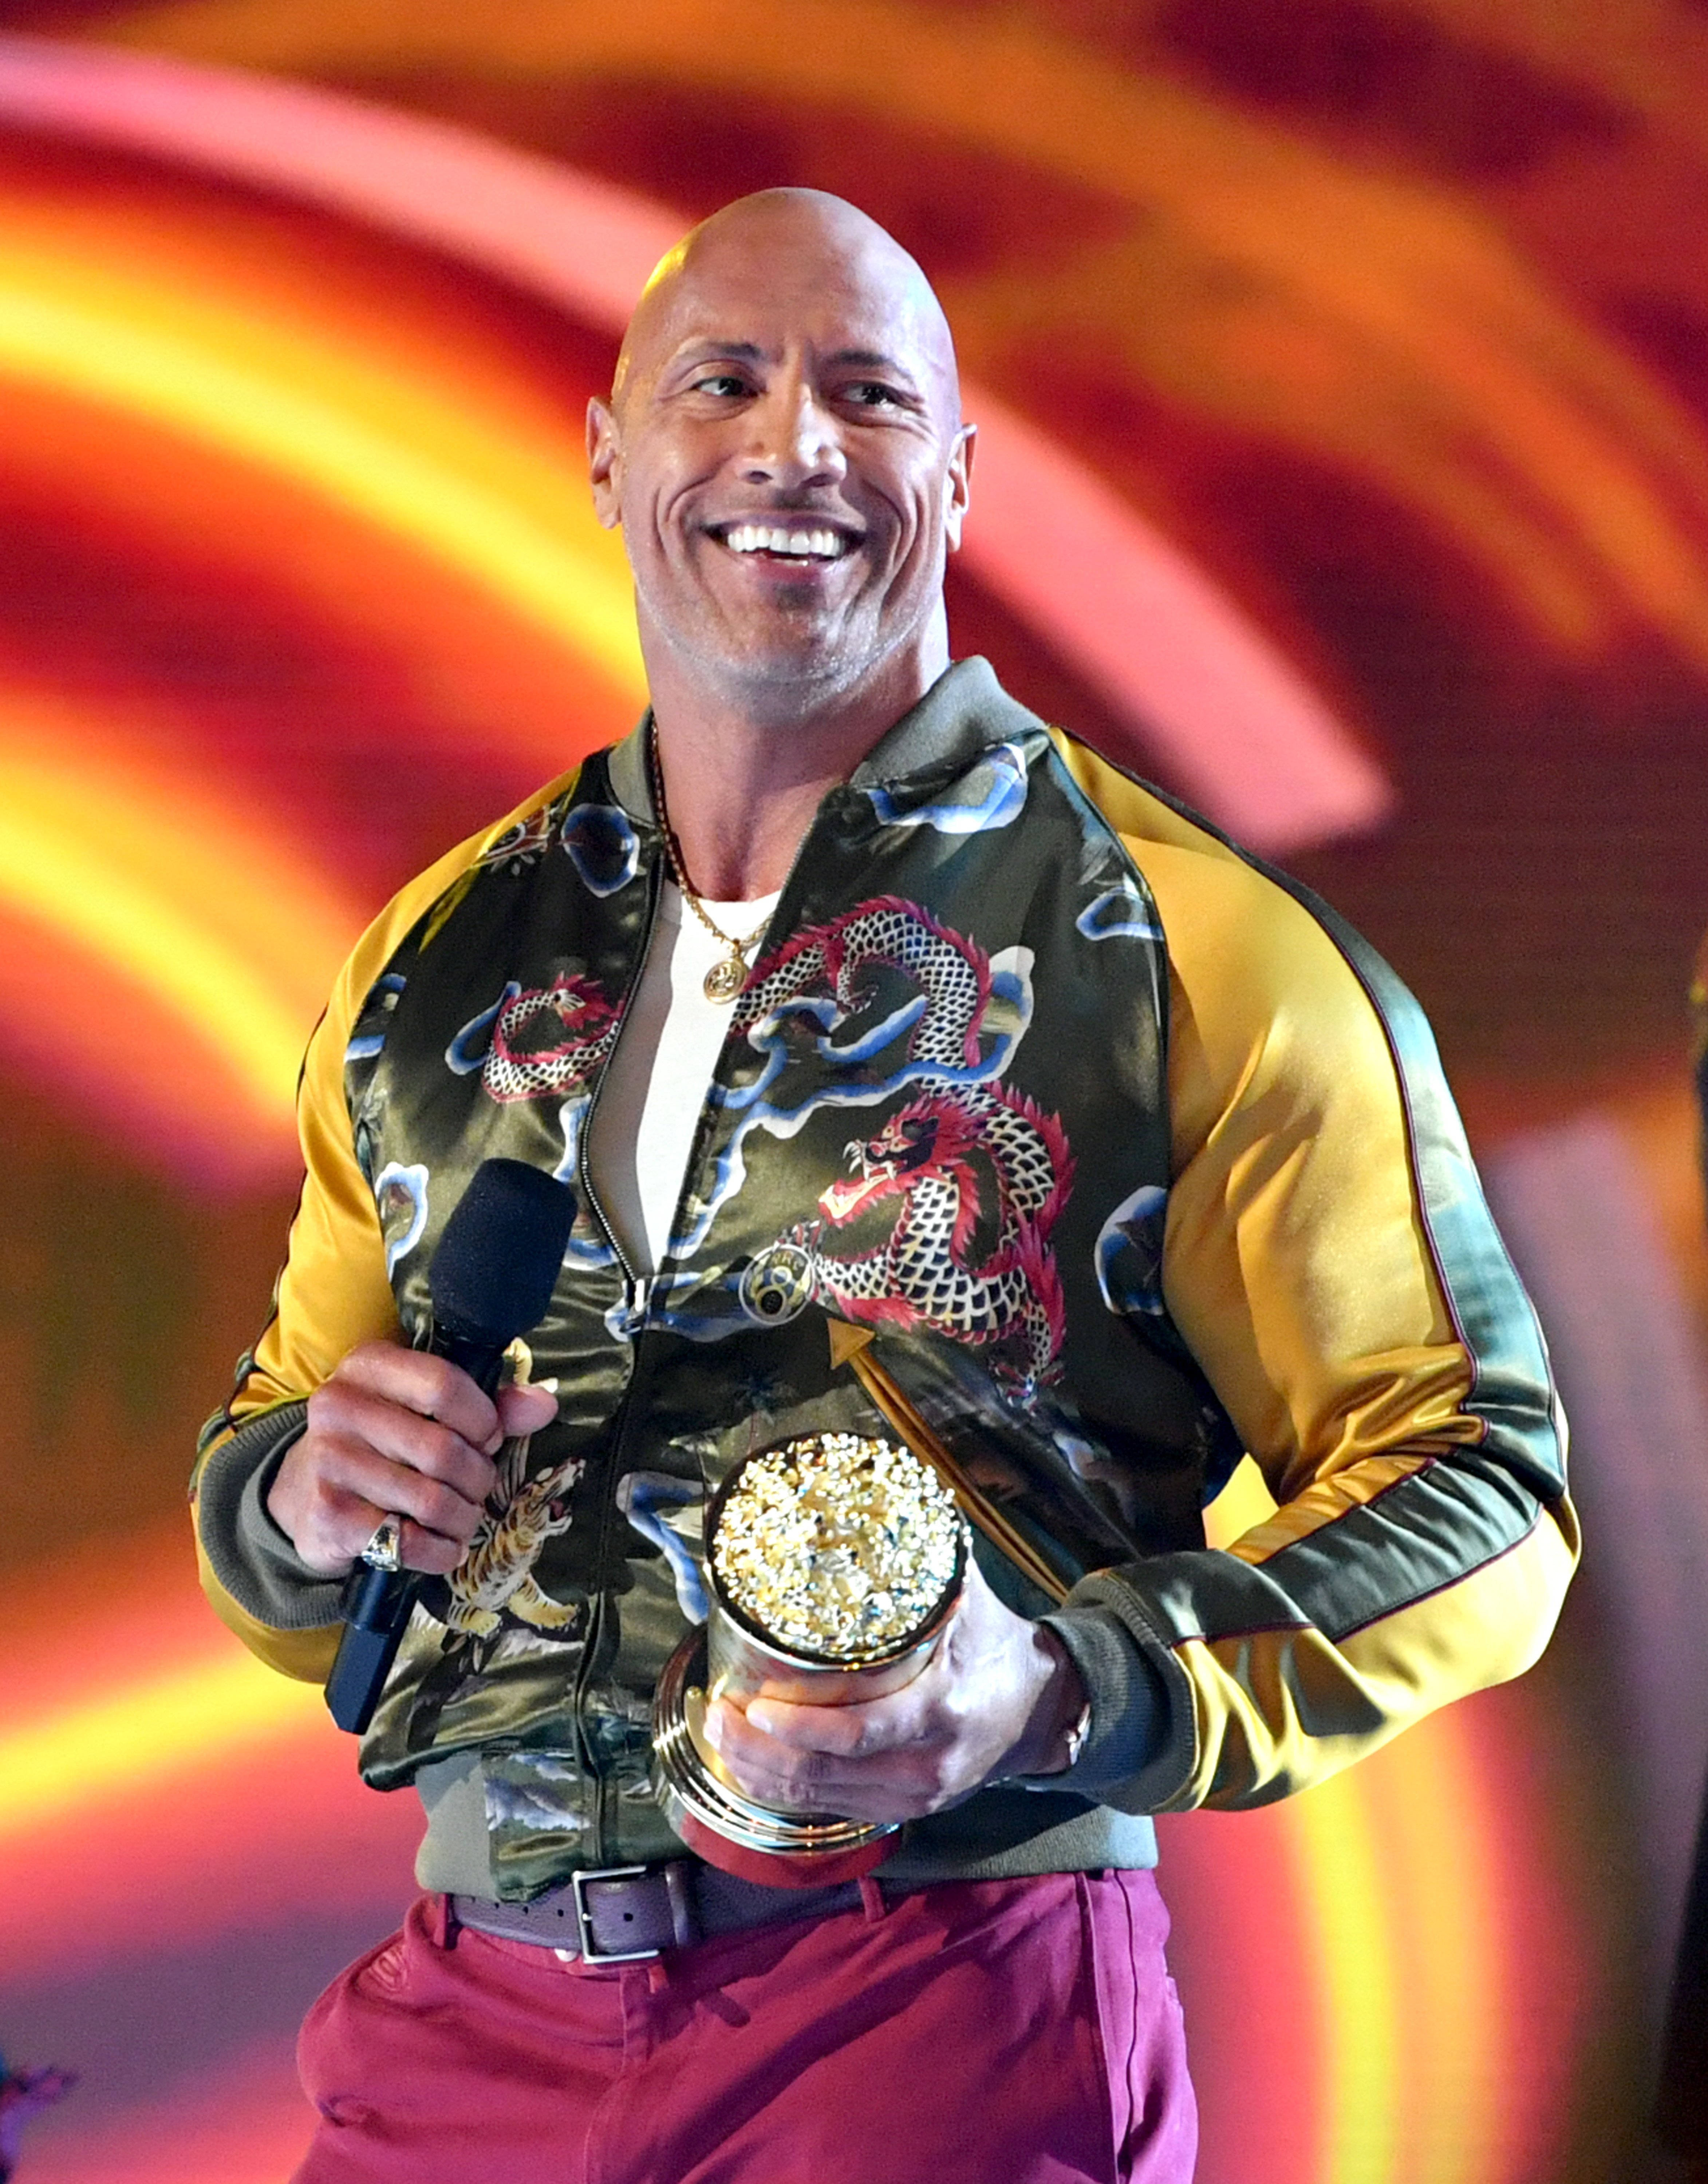 Dwayne Johnson attends the 2019 MTV Movie and TV Awards at Barker Hangar   Source: Getty Images